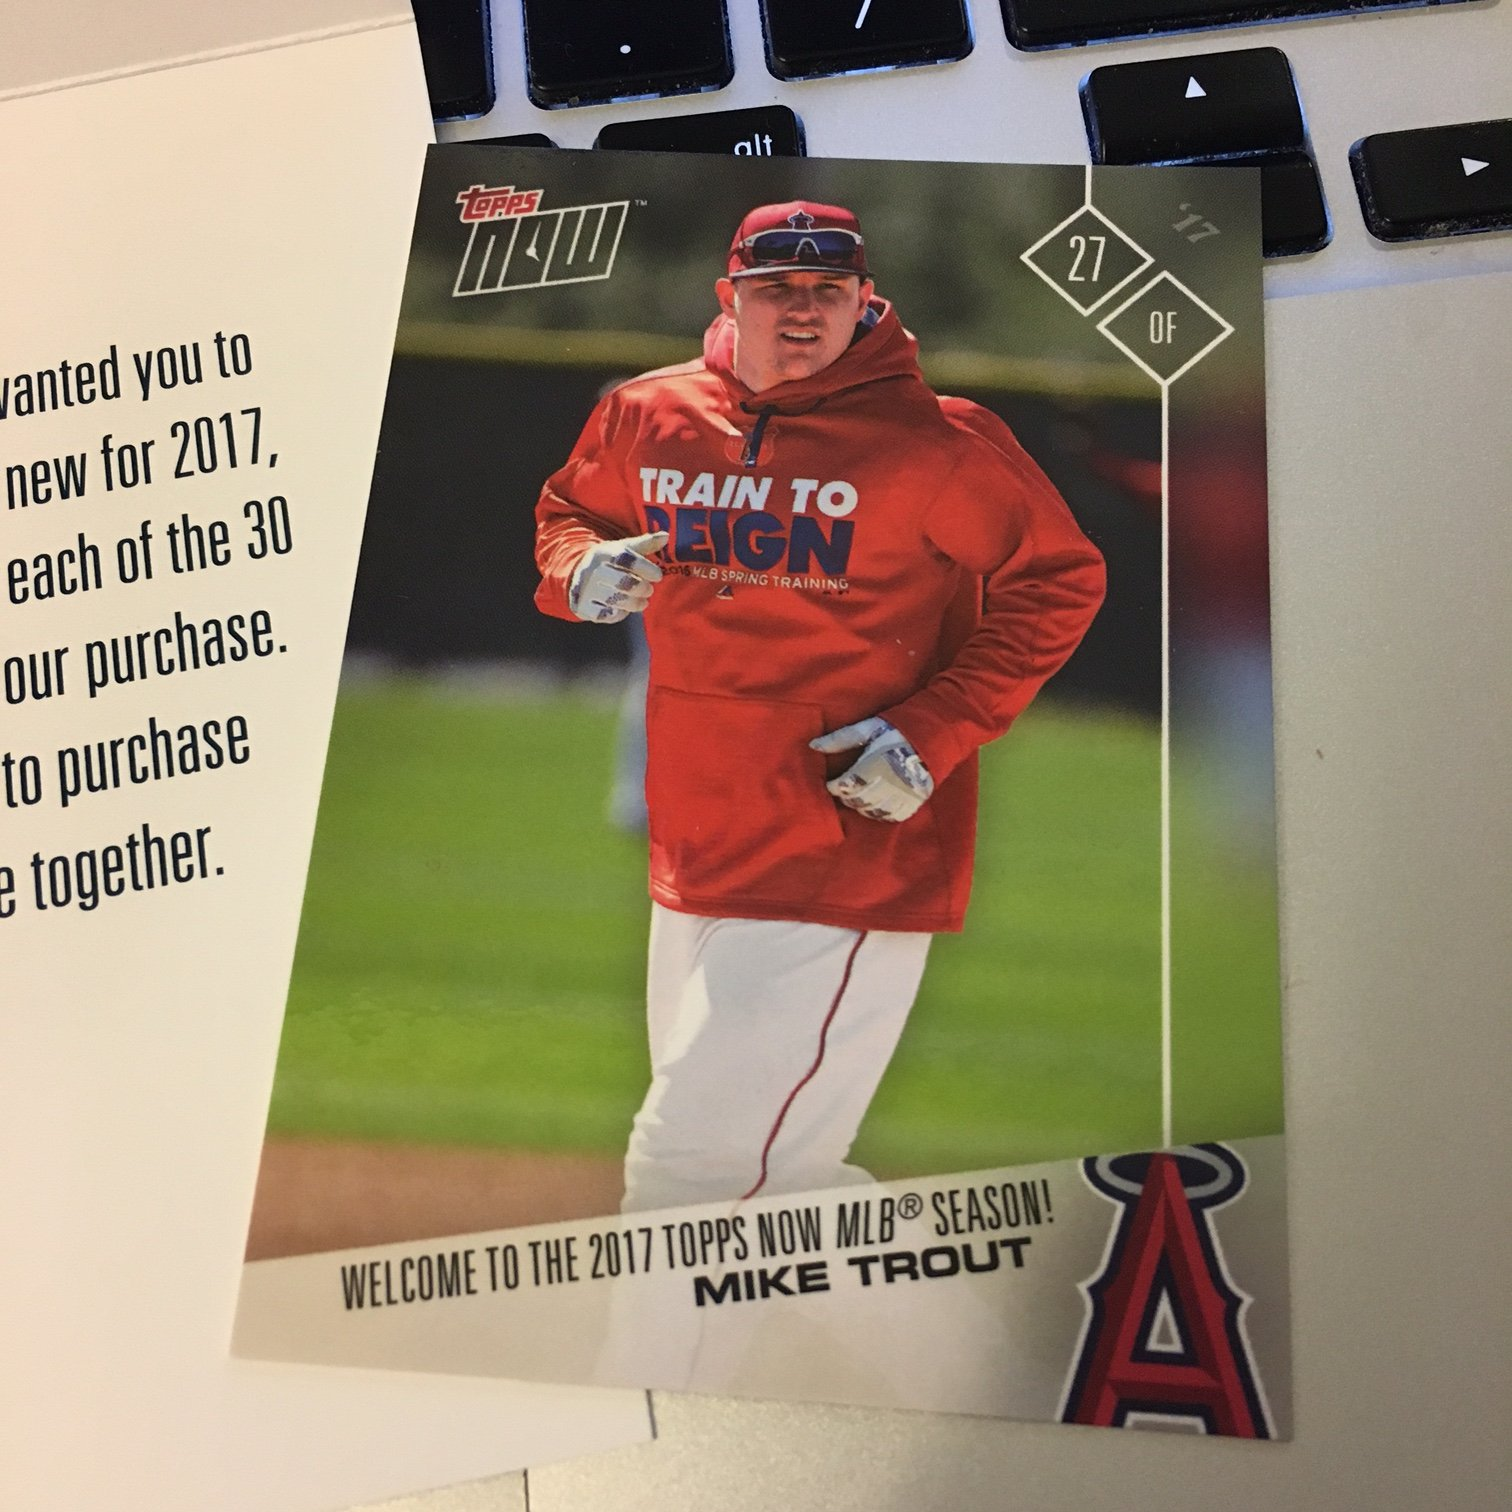 e4d5f89a We have not seen any cards since Jan. 18 but spring training is here,  meaning new MLB cards (and a new design) could arrive any day now. What  could Topps ...